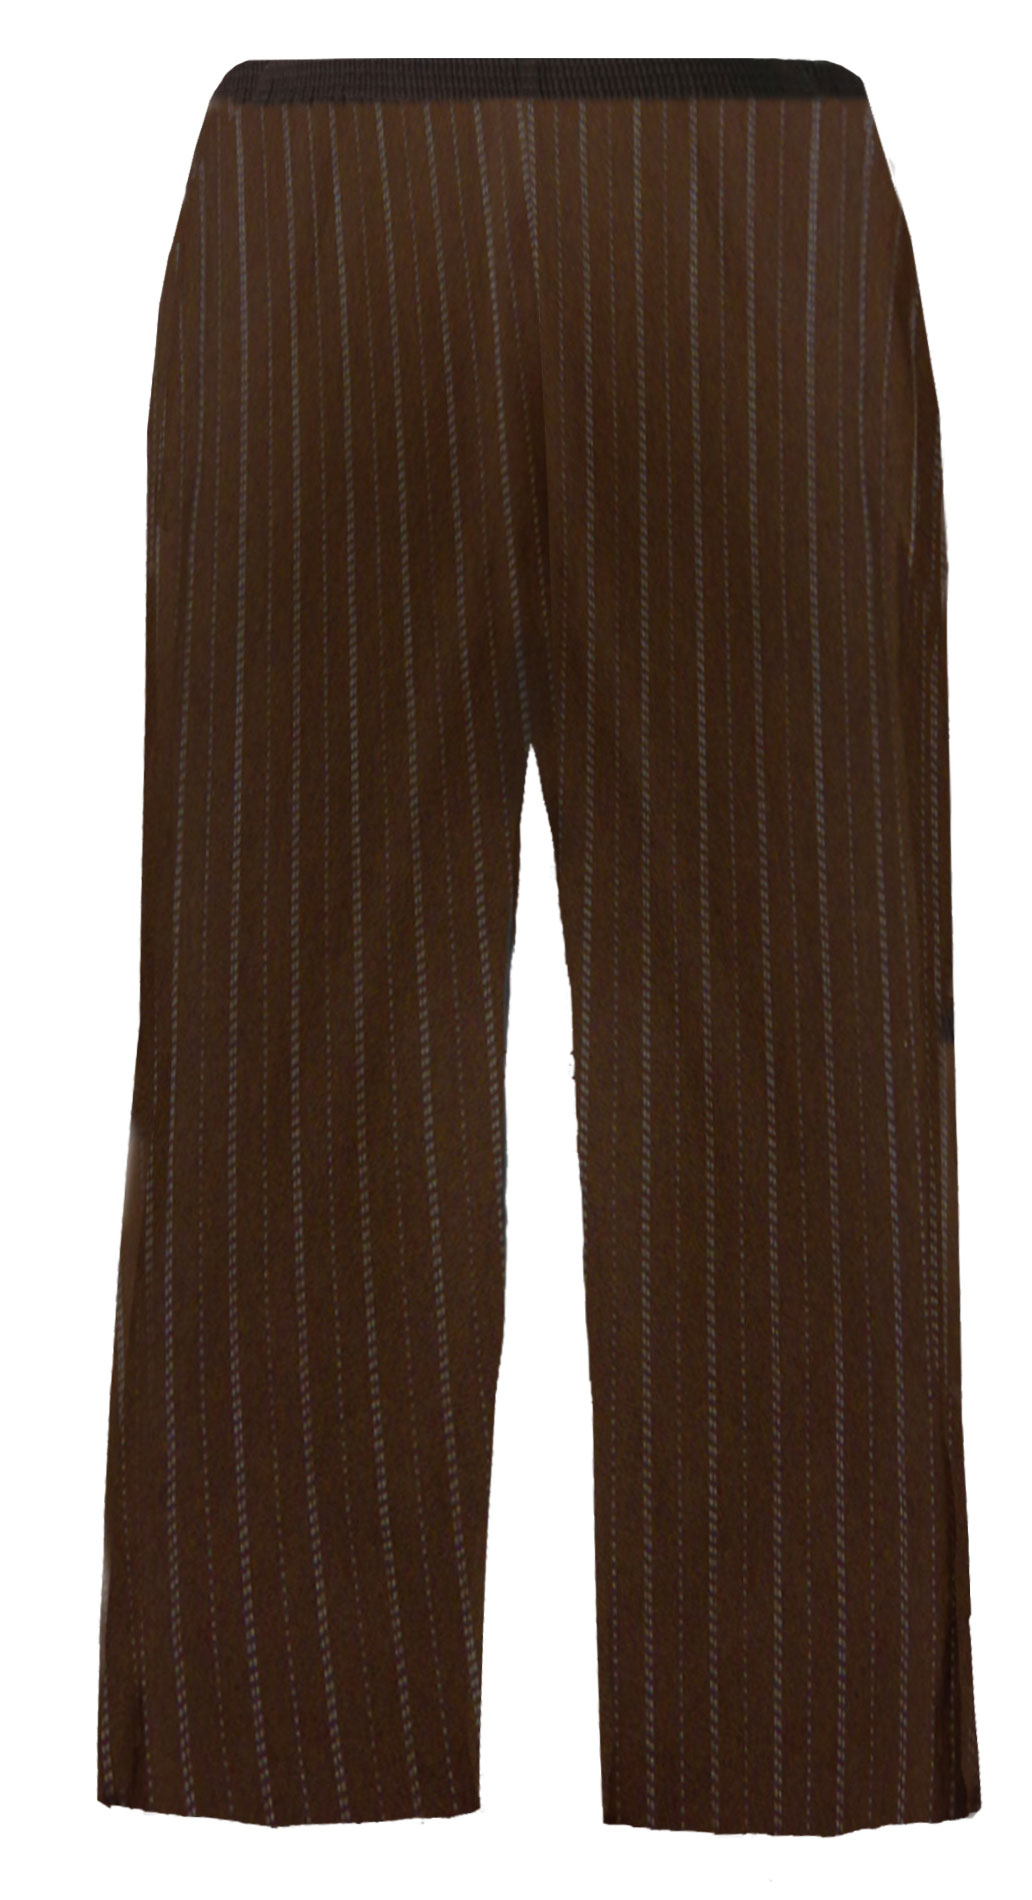 SOLD OUT! SALE! Brown Pinstripe Plus Size Business Dress Pants 5x/36W